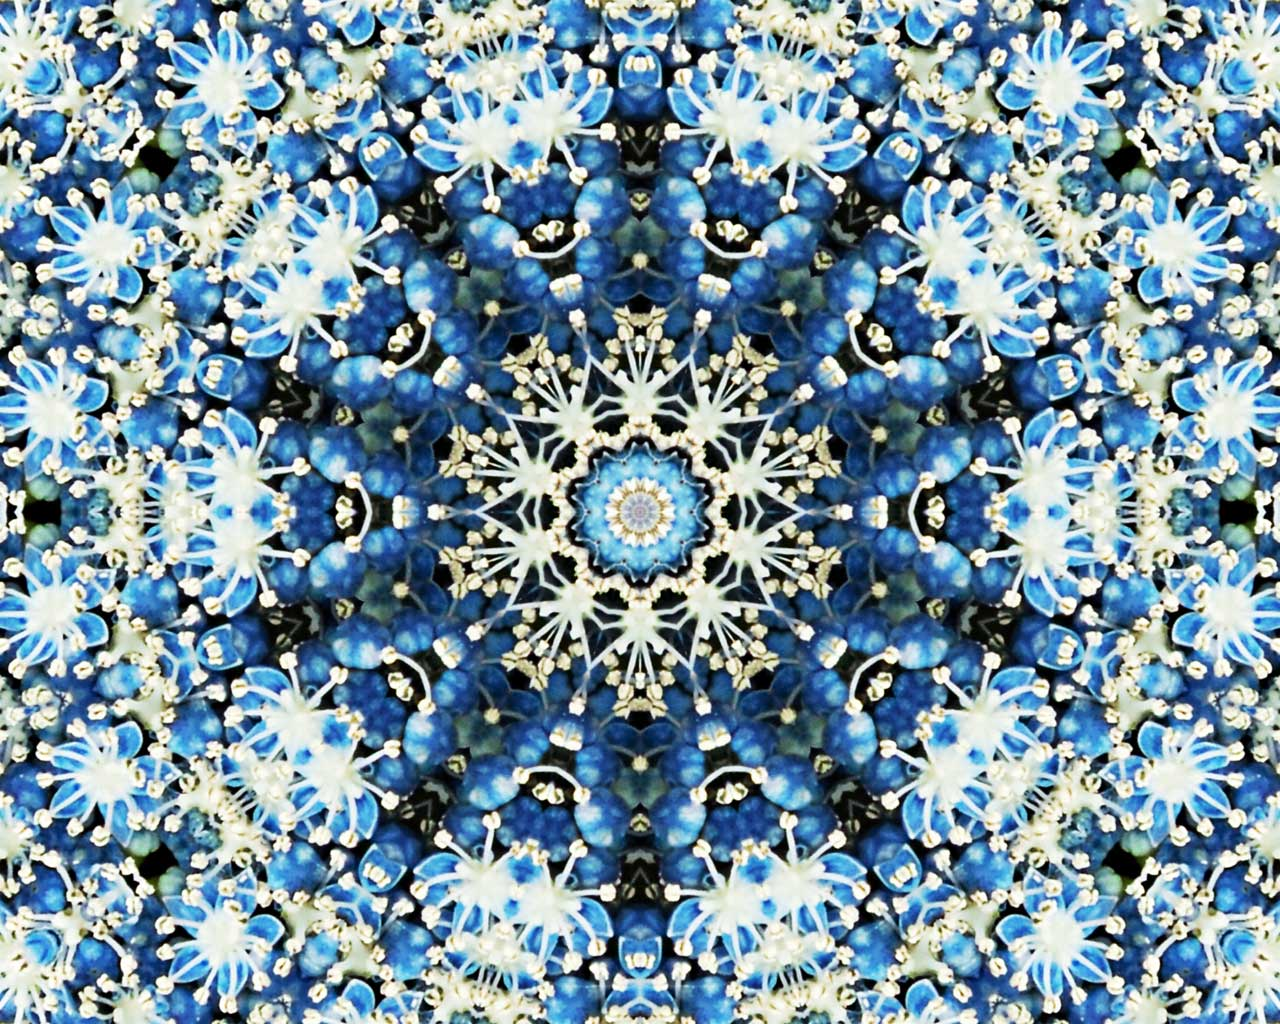 Kaleidoscope desktop free background by Jeanne Selep